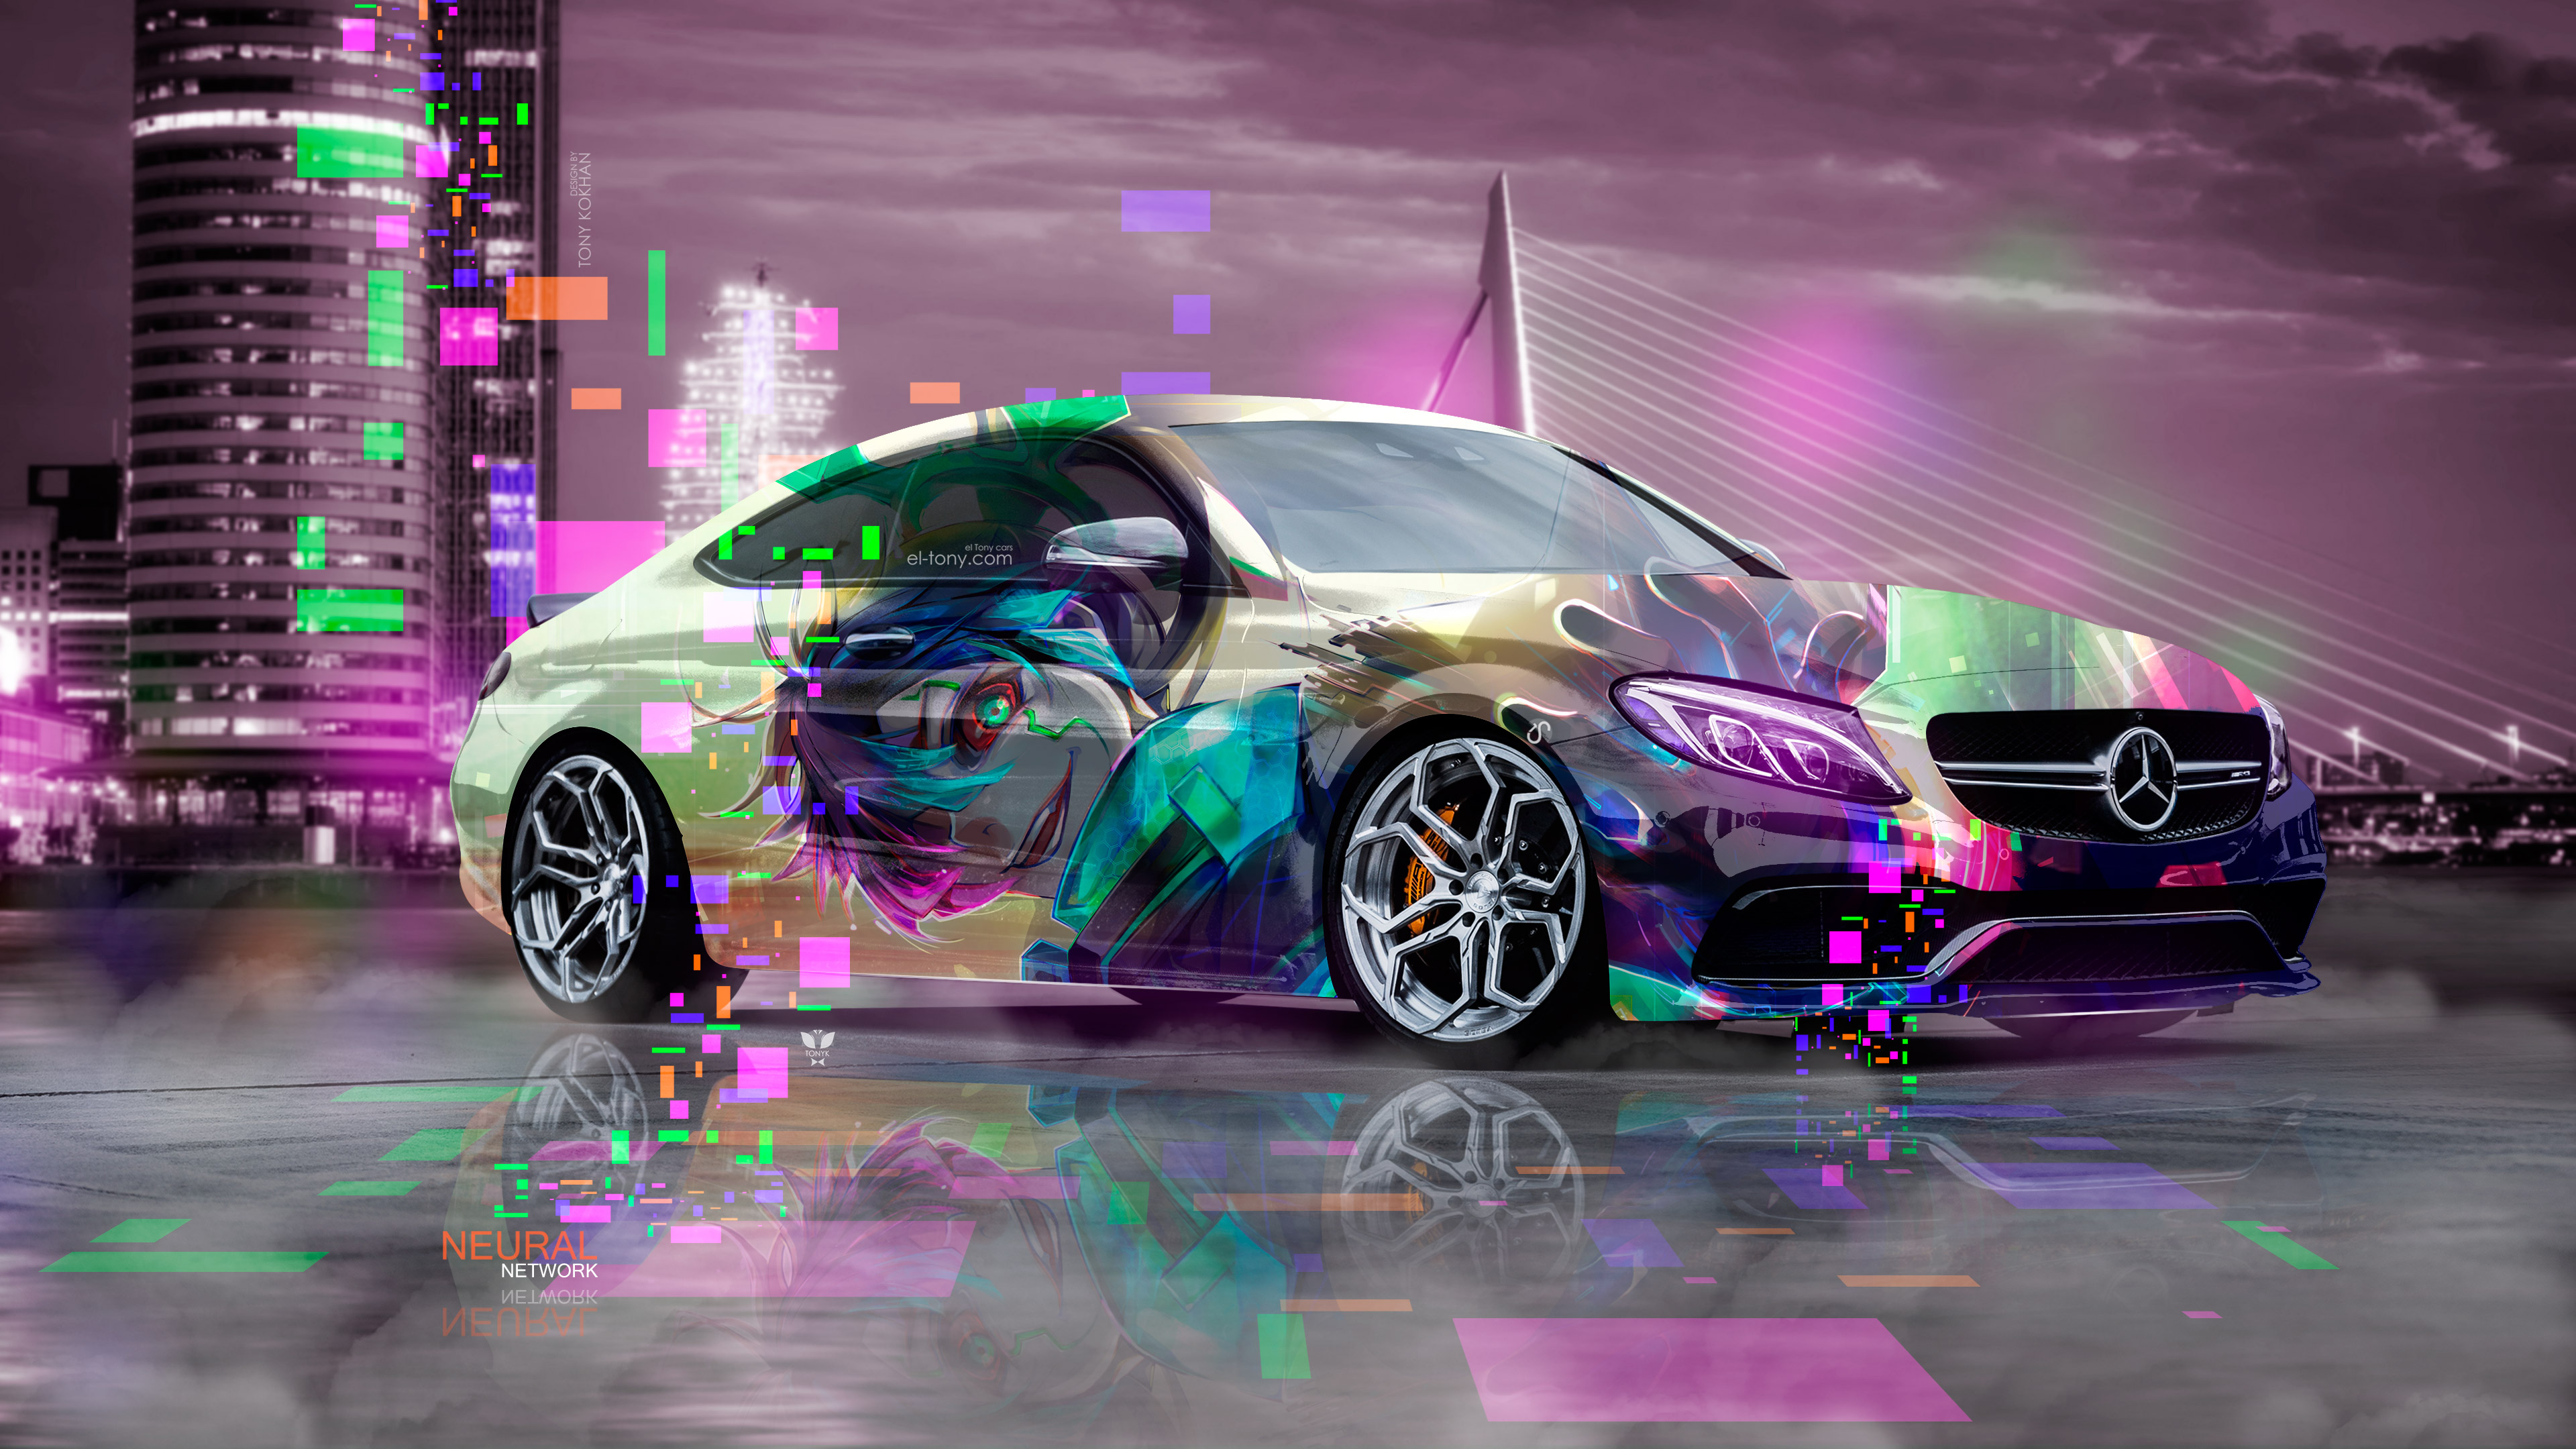 Mercedes-Benz-C63S-AMG-Сoupe-Anime-Boy-Aerography-Neural-Network-Rotterdam-Netherlands-Fog-Night-Art-Car-2018-Multicolors-4K-Wallpapers-design-by-Tony-Kokhan-www.el-tony.com-image